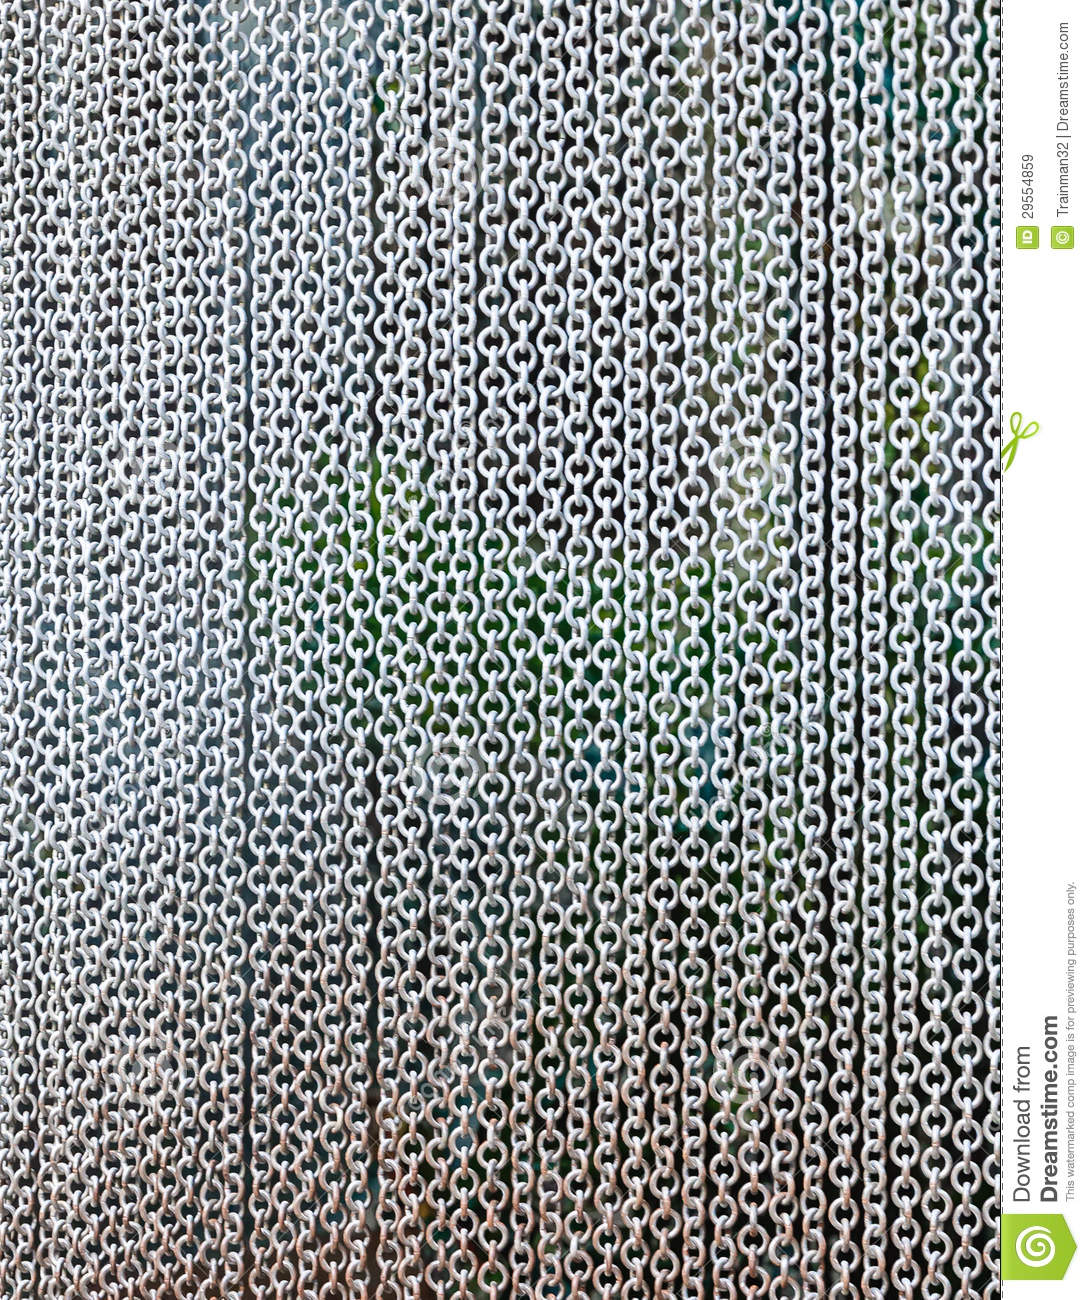 Metal Curtain Stock Image Image Of Object Gate Blind